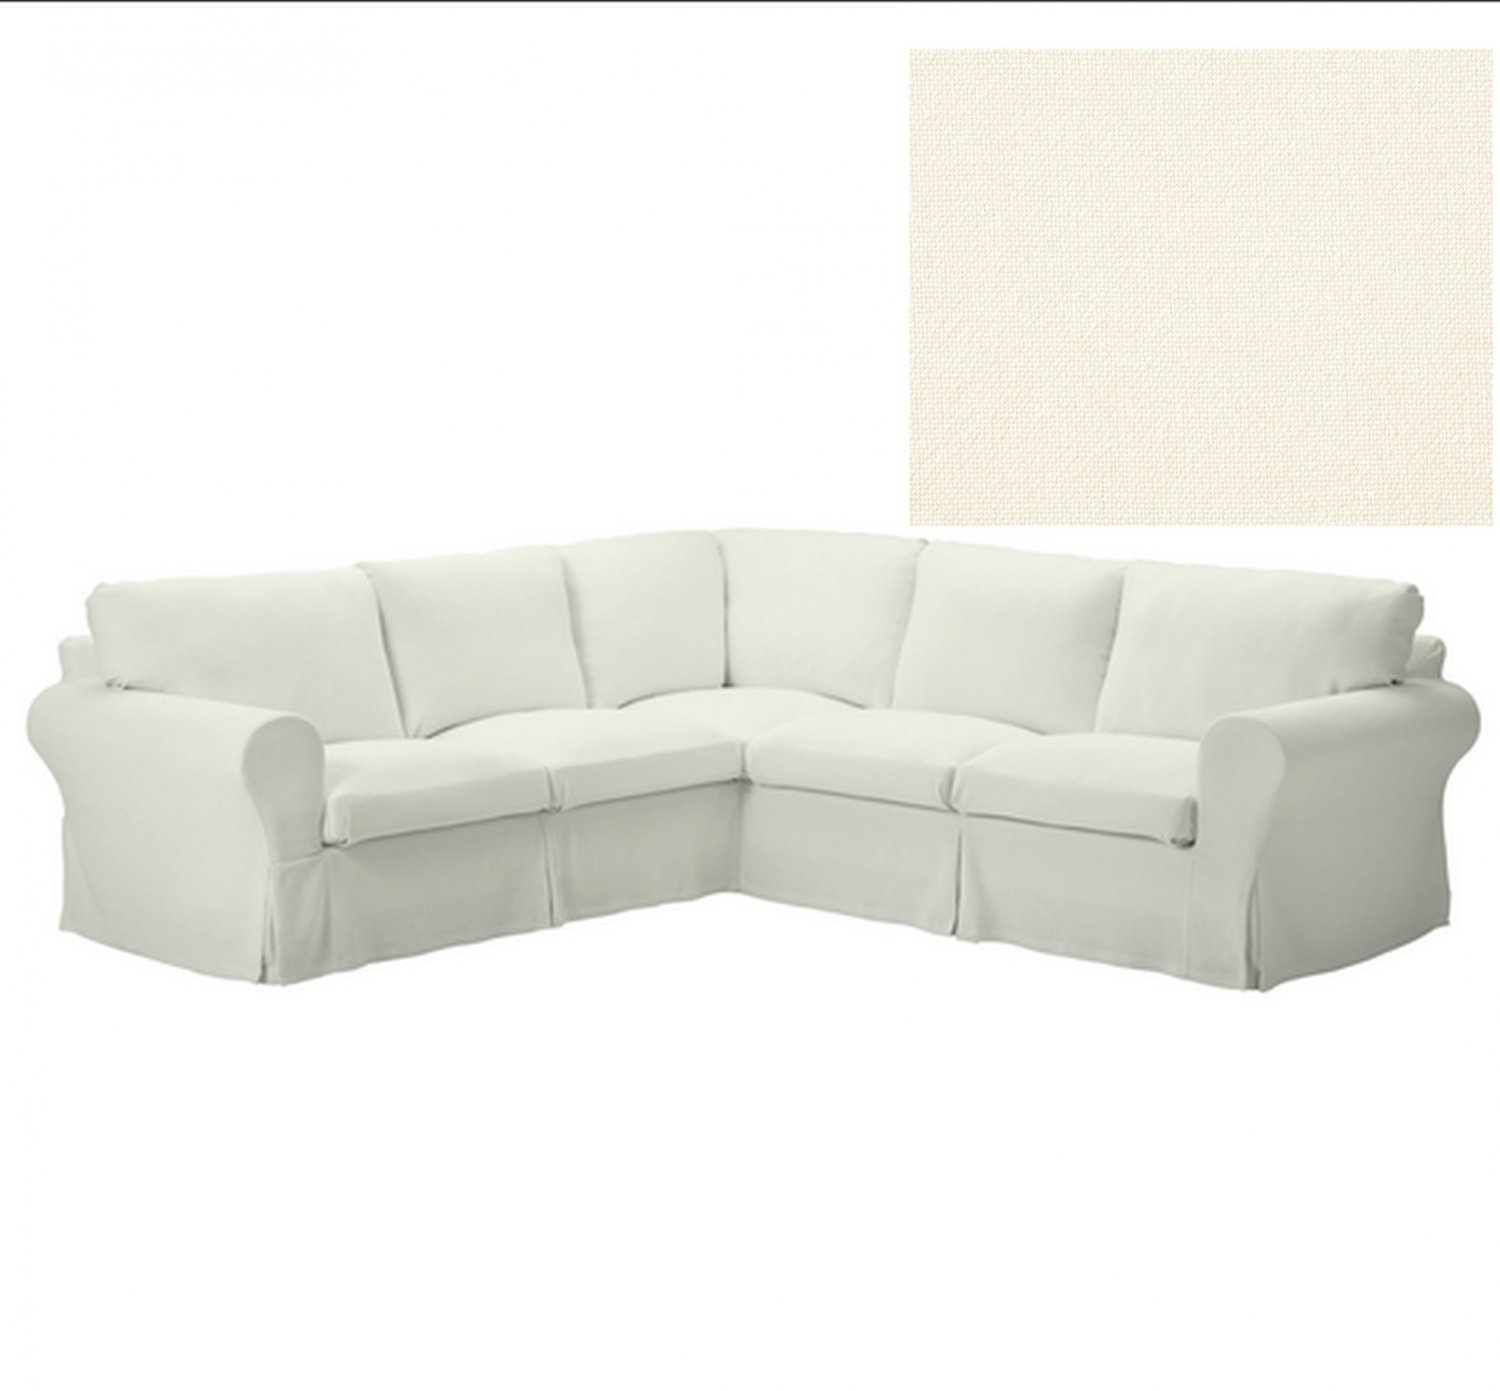 ikea karlanda sofa covers uk plastic ektorp 2 432 corner slipcover stenasa white off